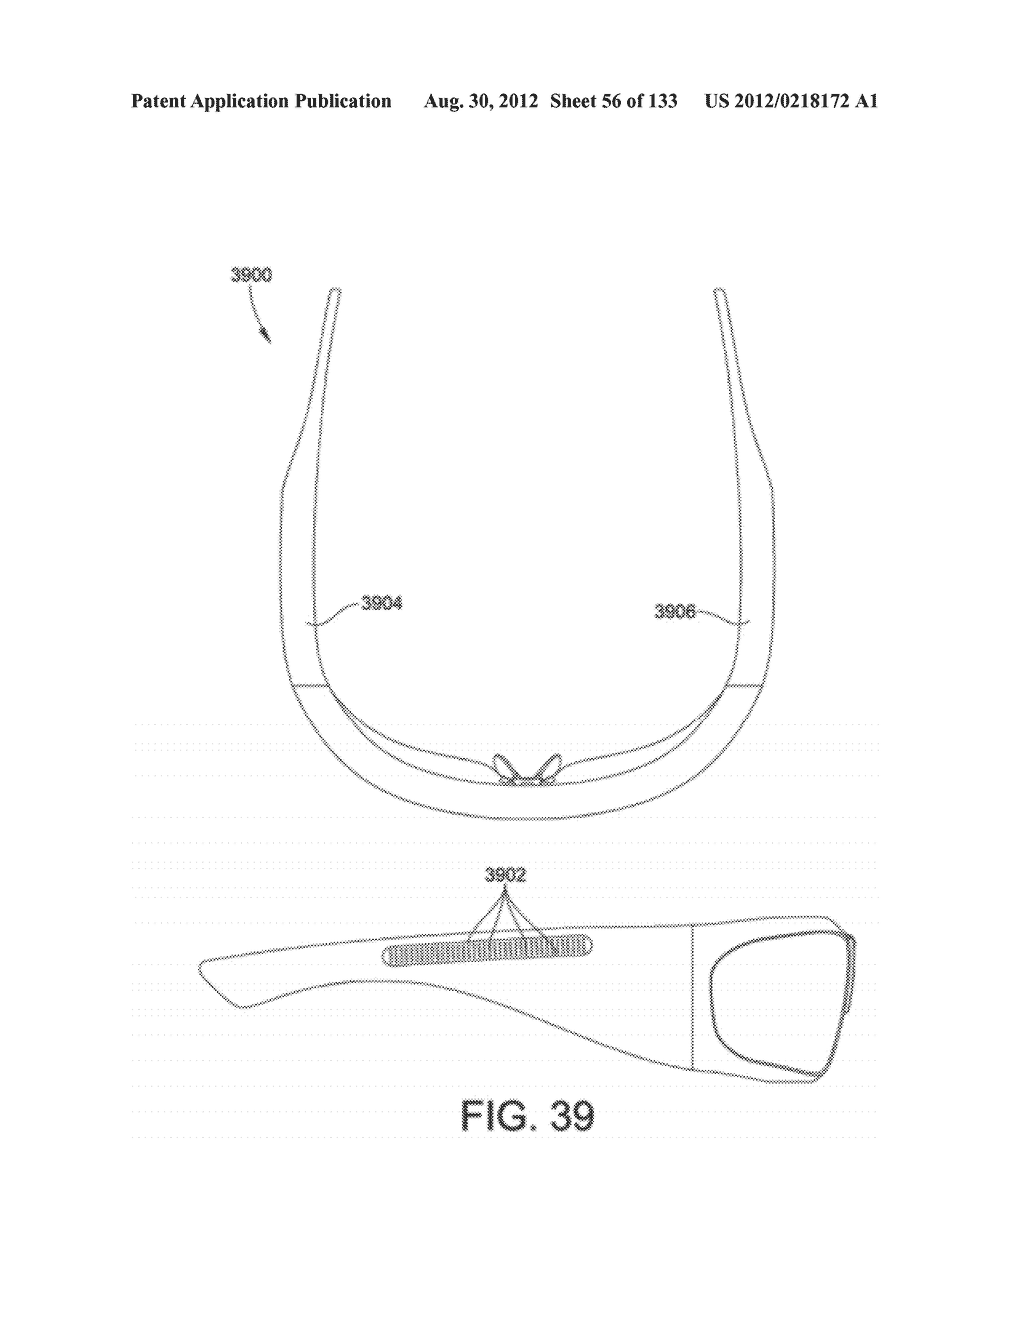 SEE-THROUGH NEAR-EYE DISPLAY GLASSES WITH A SMALL SCALE IMAGE SOURCE - diagram, schematic, and image 57